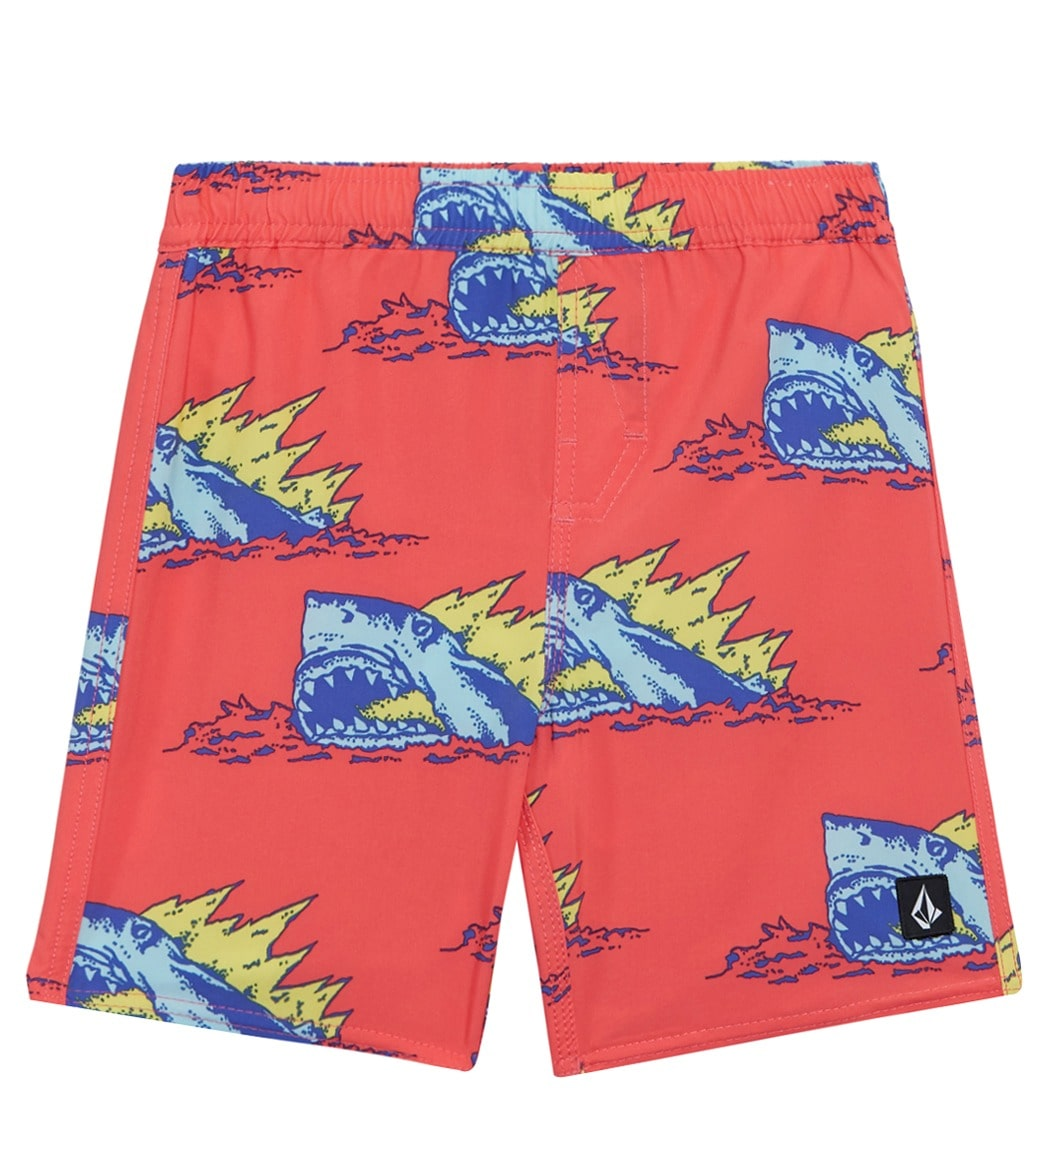 Colorful red Lips kiss Toddler Little Boys Swim Trunks Quick Dry Water Beach Board Shorts